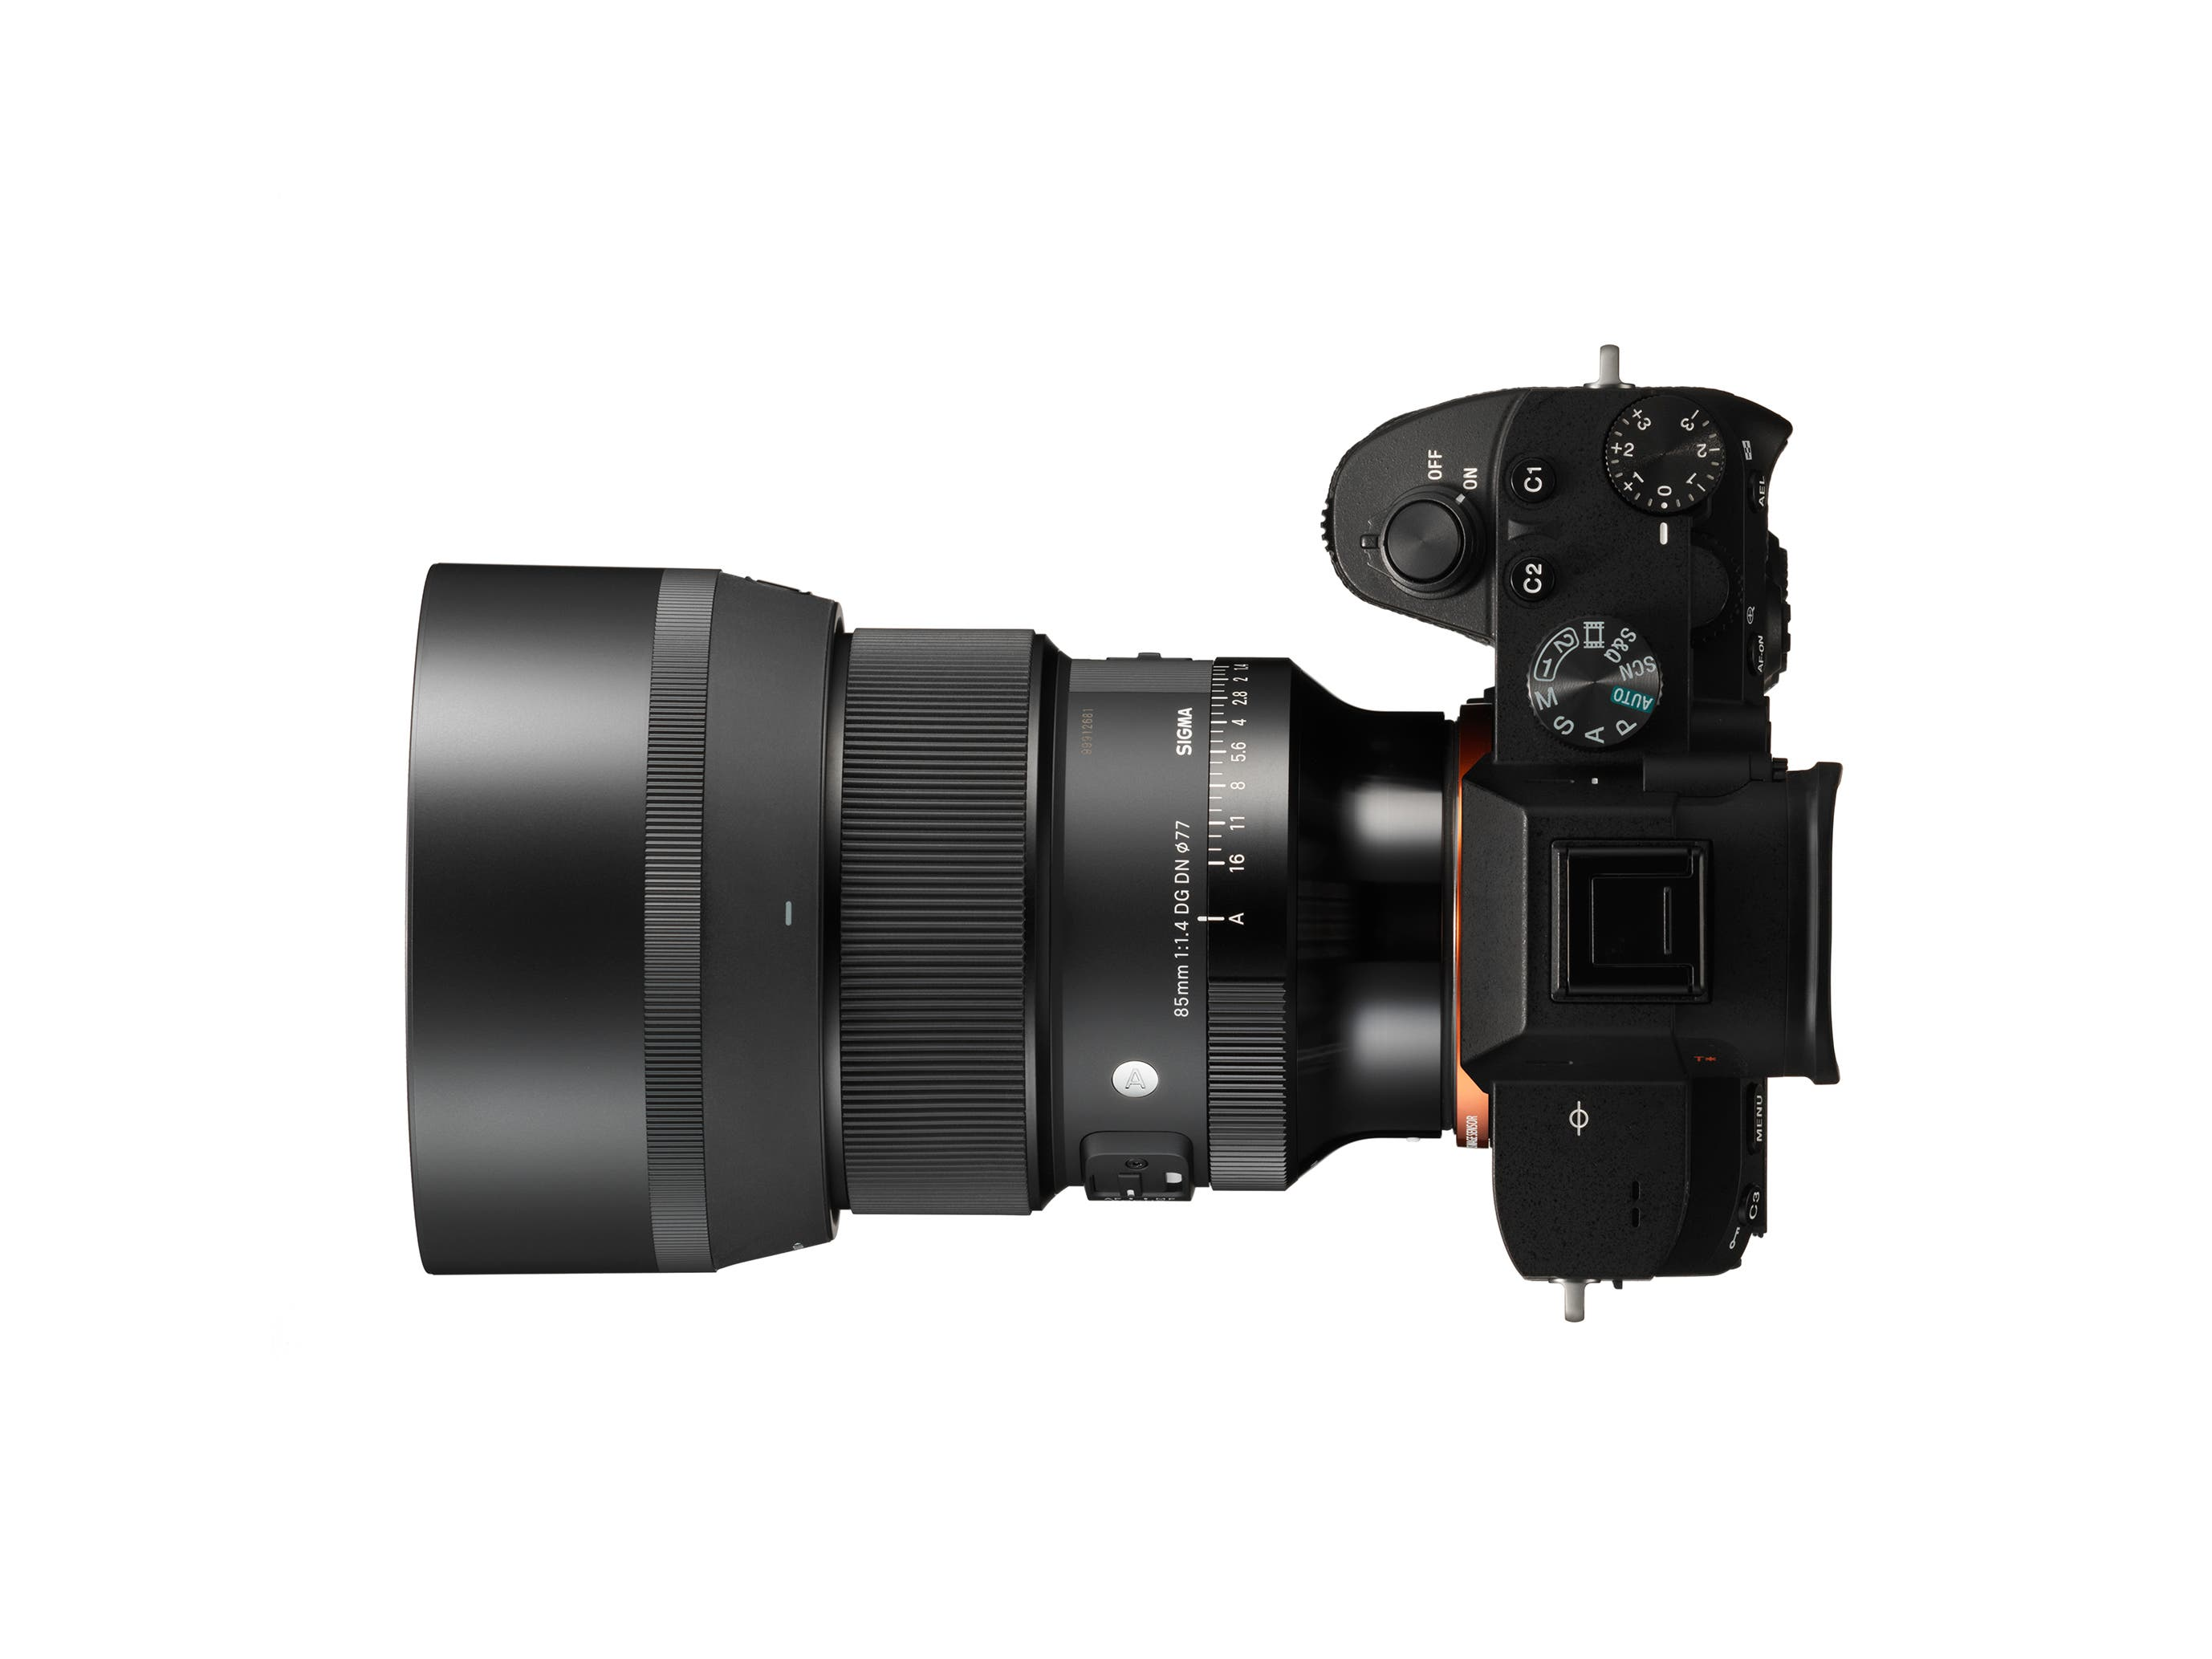 The Sigma 85mm F1.4 DG DN Art Solves an Issue with Aperture Rings